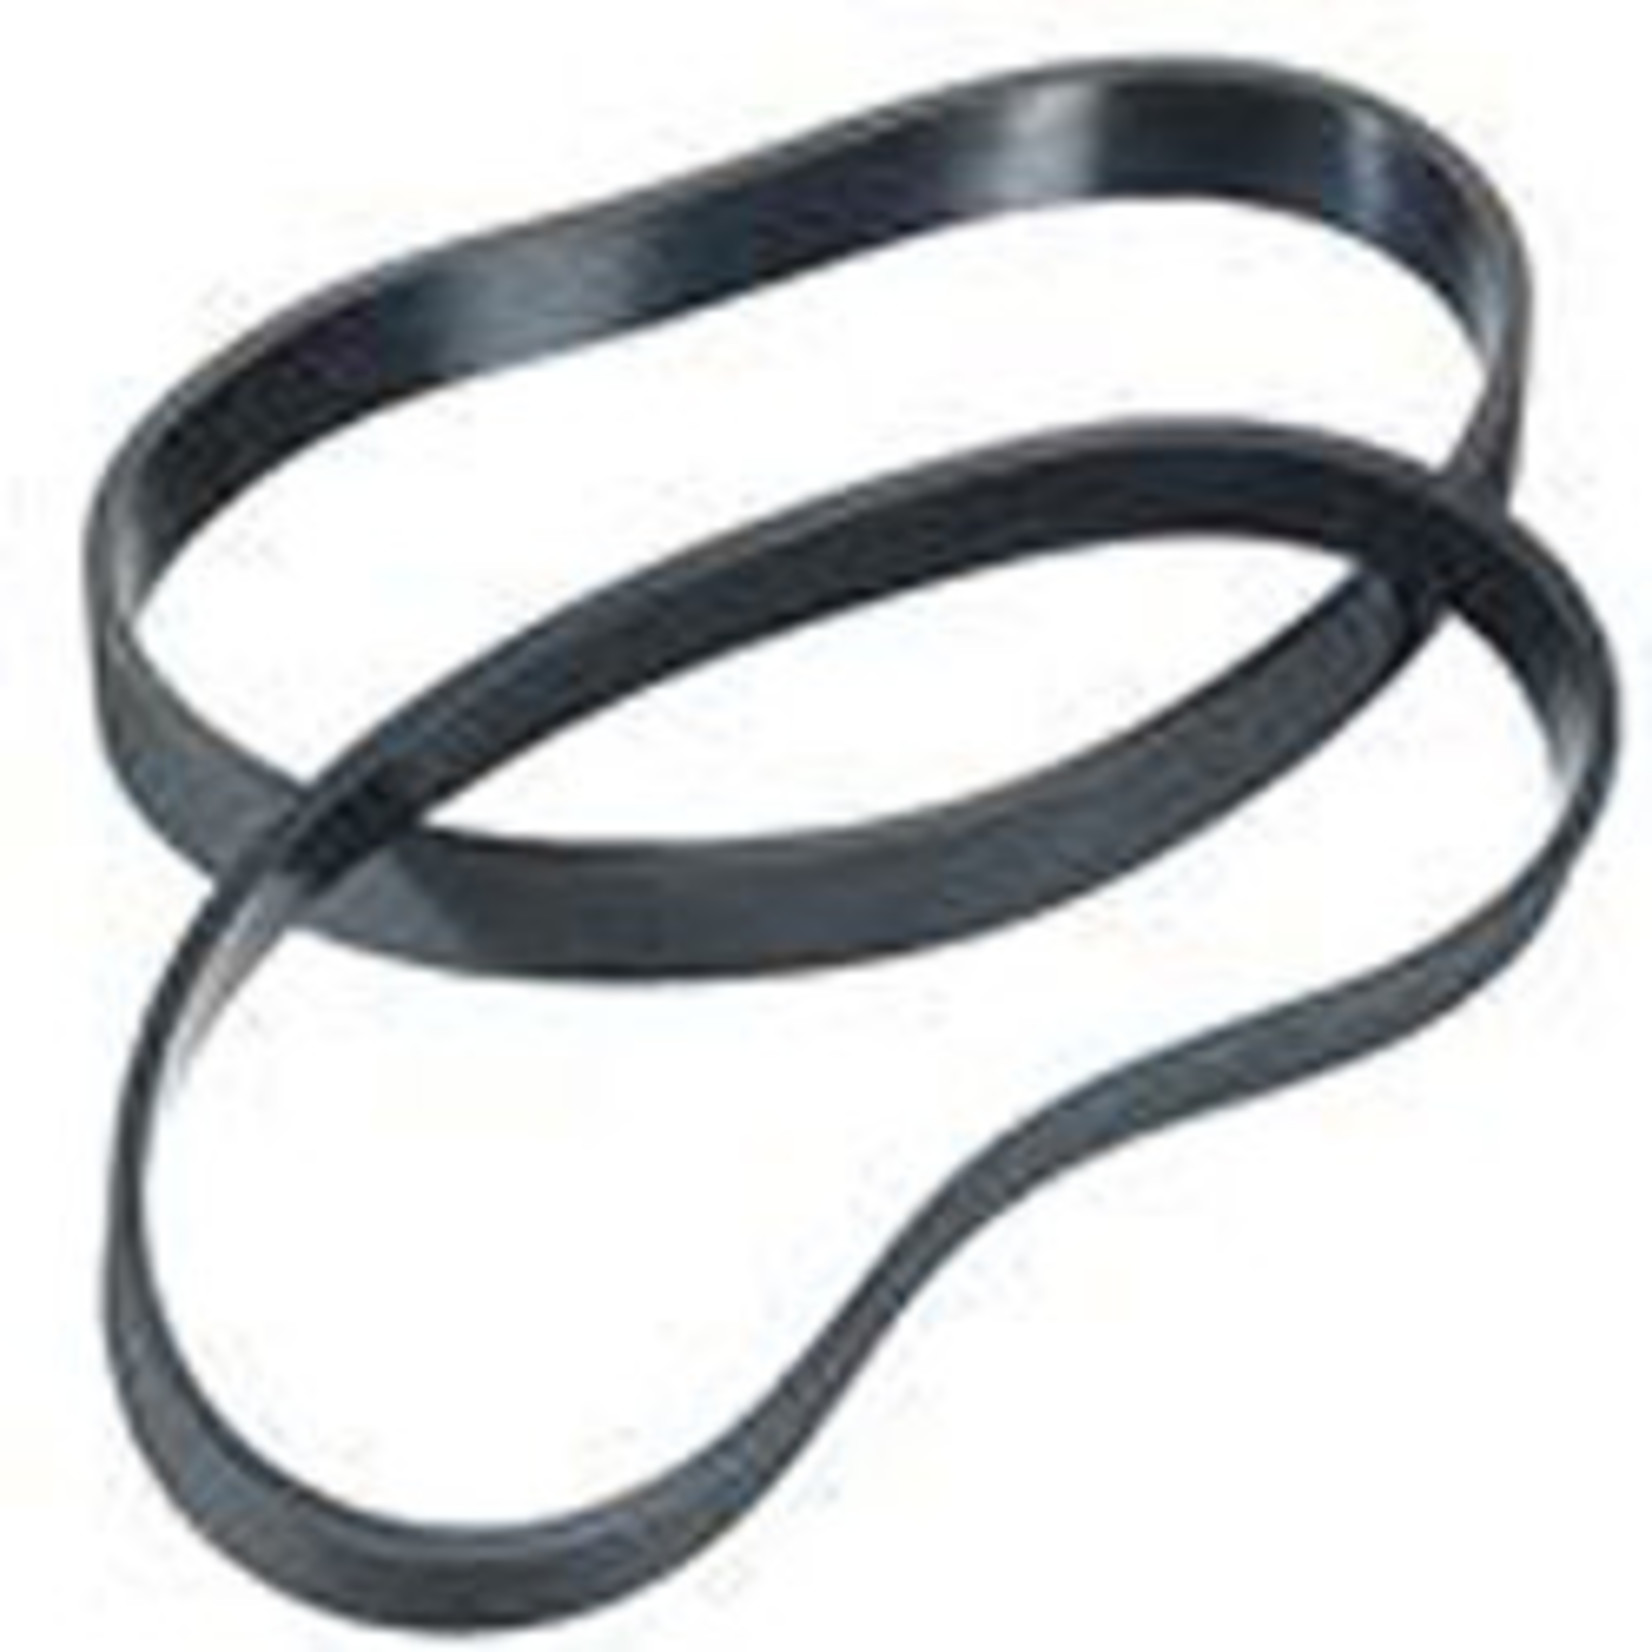 Bissell Bissell Style 1 & 4, Dirt Devil Style 9 Belt (2pk)